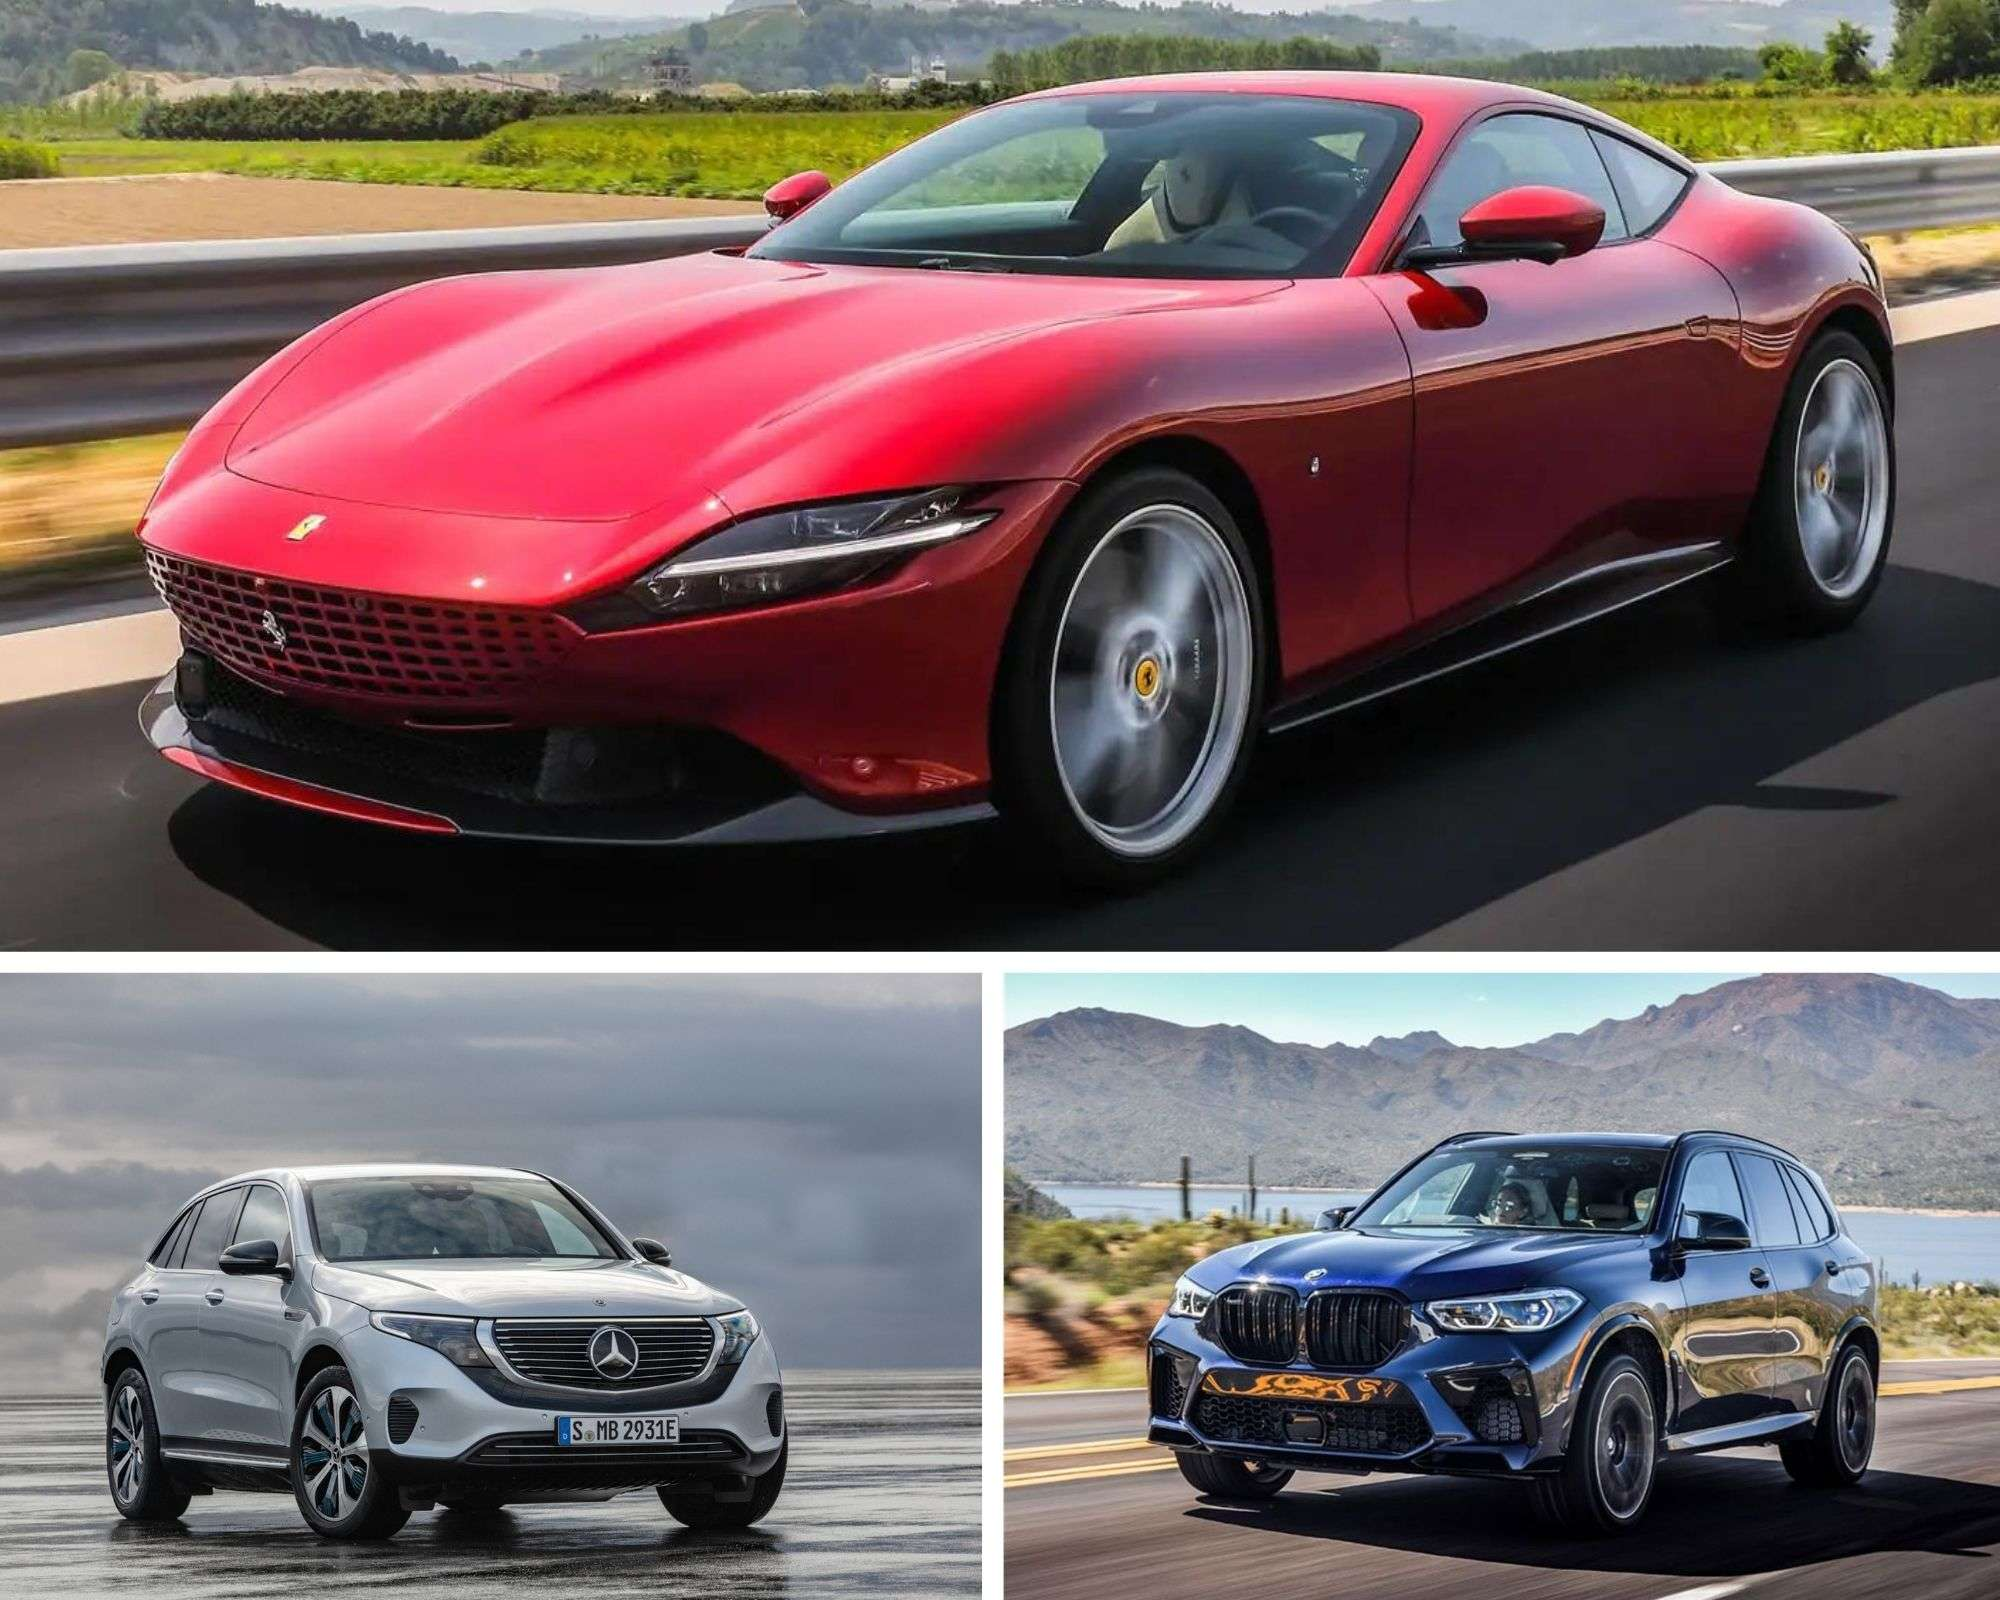 More than 70 new luxury vehicles, including brand new vehicles, facelifts and new variants, are set to be launched this year. Industry experts expect the luxury car market to record sales of 28,000 to 33,000 units in 2021, up from 20,000-21,000 last year.